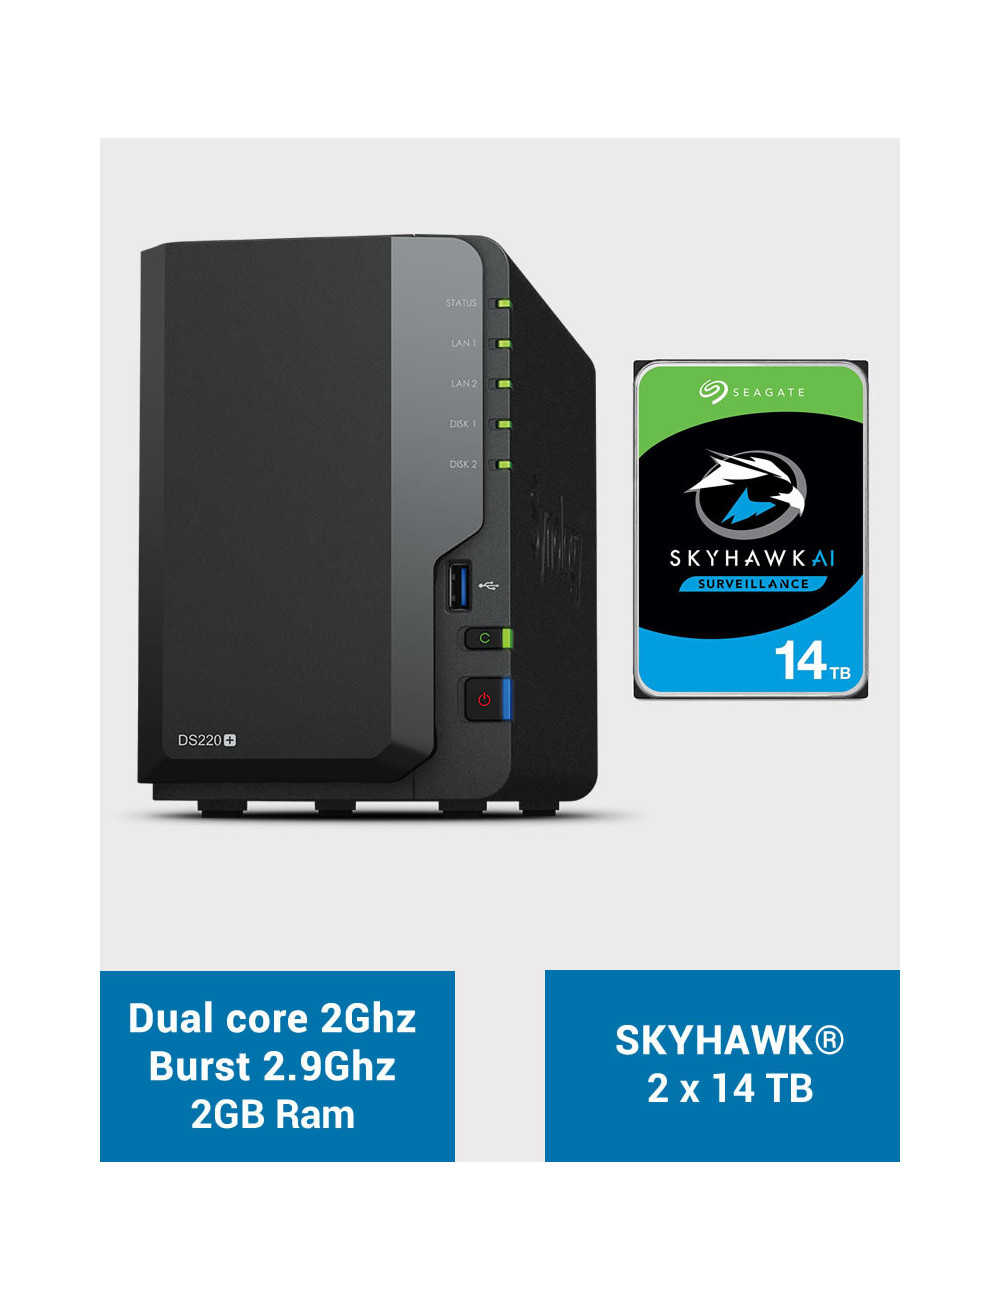 Synology DS220+ 2Go Serveur NAS SKYHAWK 28To (2x14To)